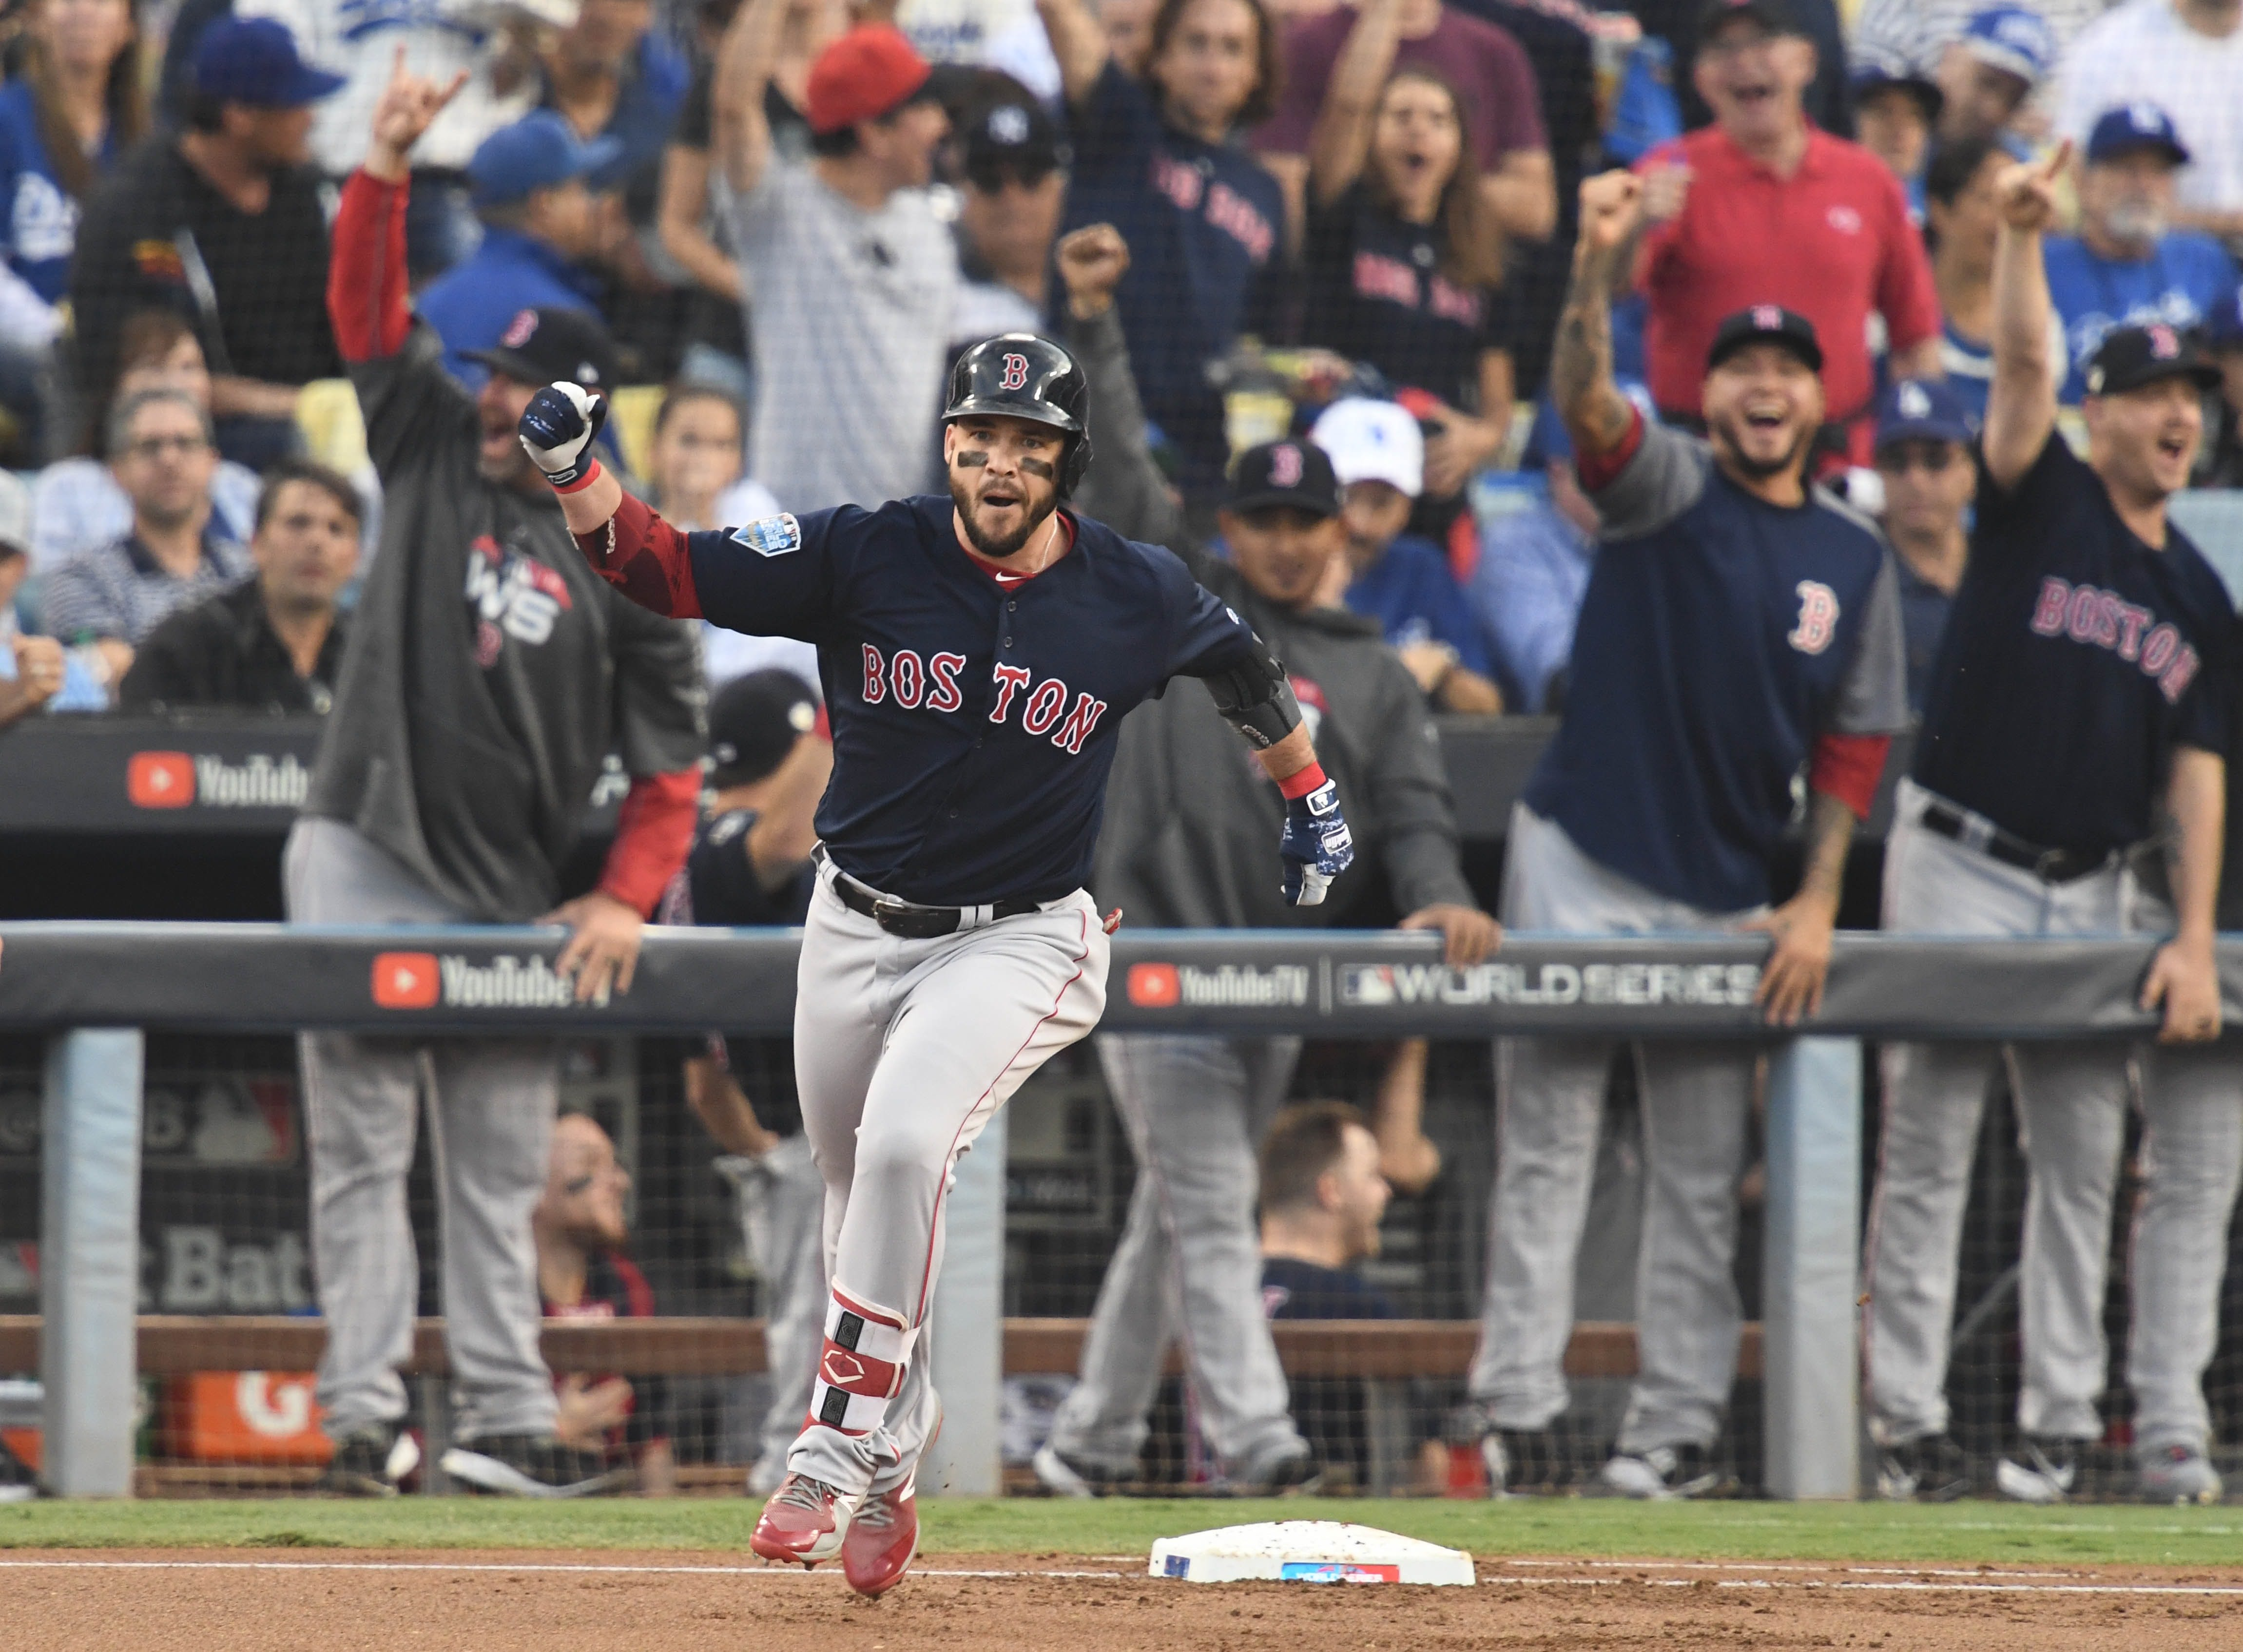 0bcb6a6fd91 Red Sox win World Series behind Price